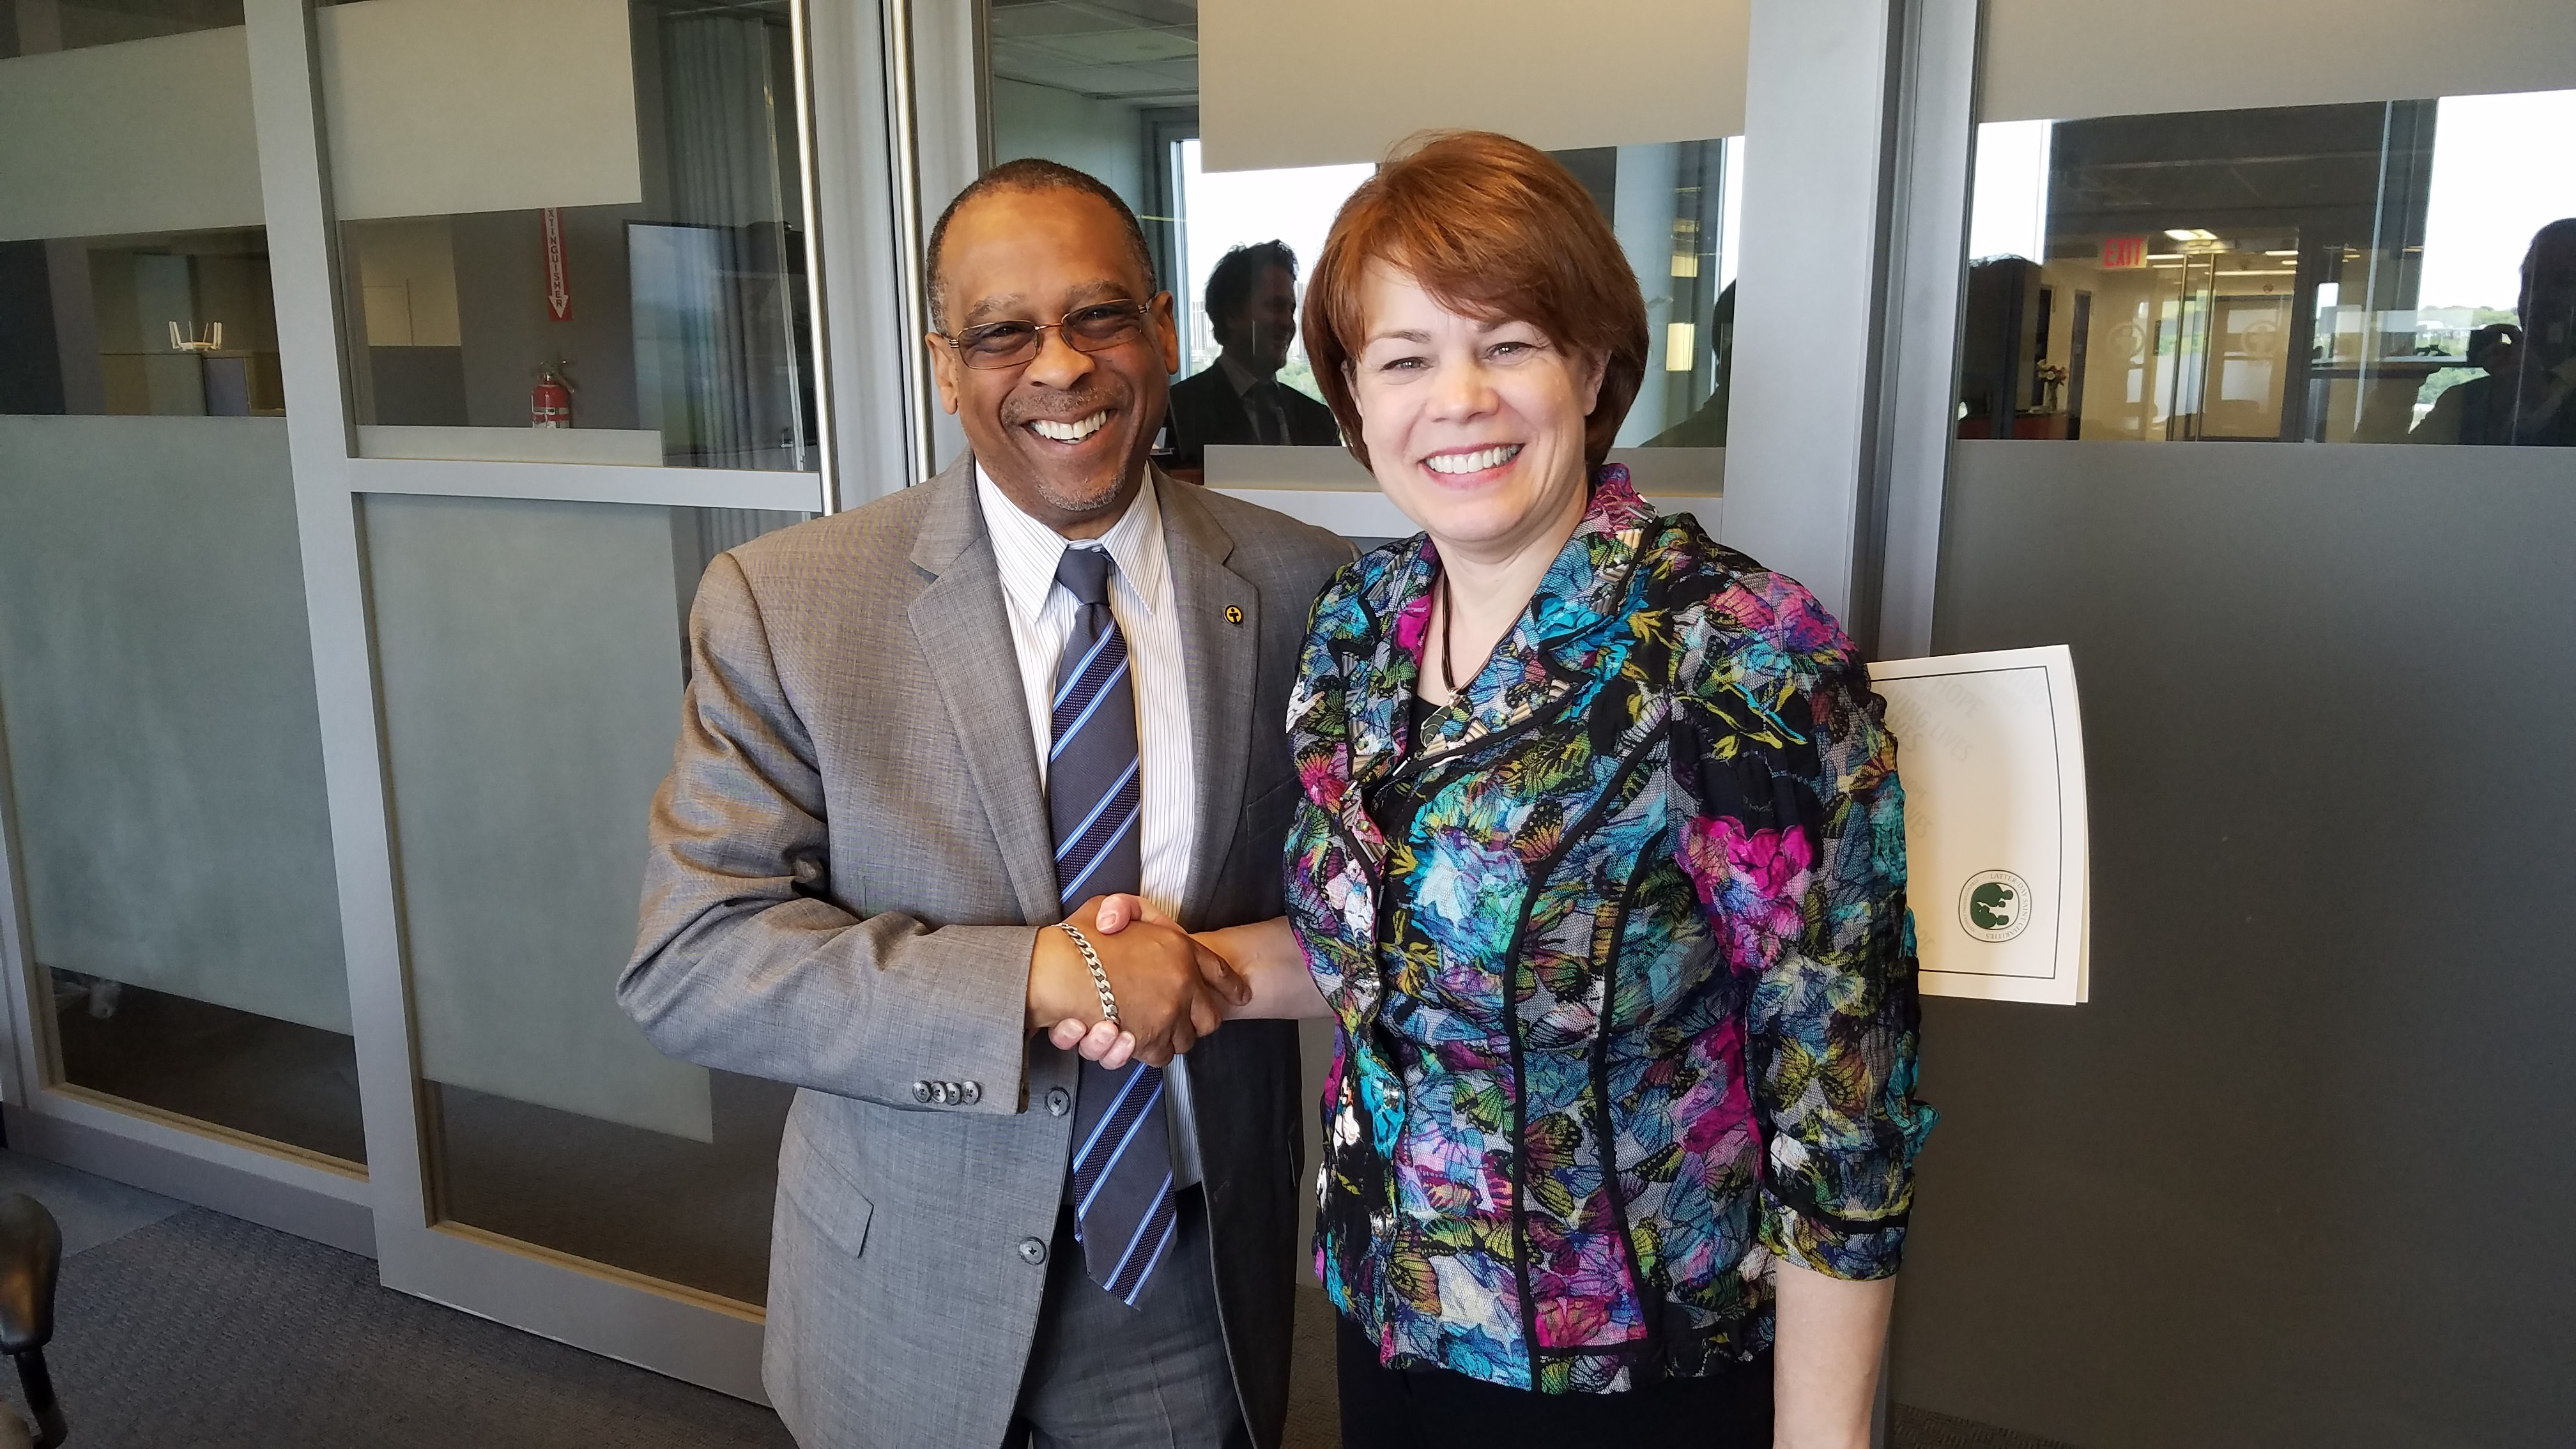 Reverend John L. McCullough, president and CEO of Church World Service, welcomes Sister Sharon Eubank, president of Latter-day Saint Charities and first counselor in the Church's Relief Society general presidency, on May 15, 2019, in New York City.